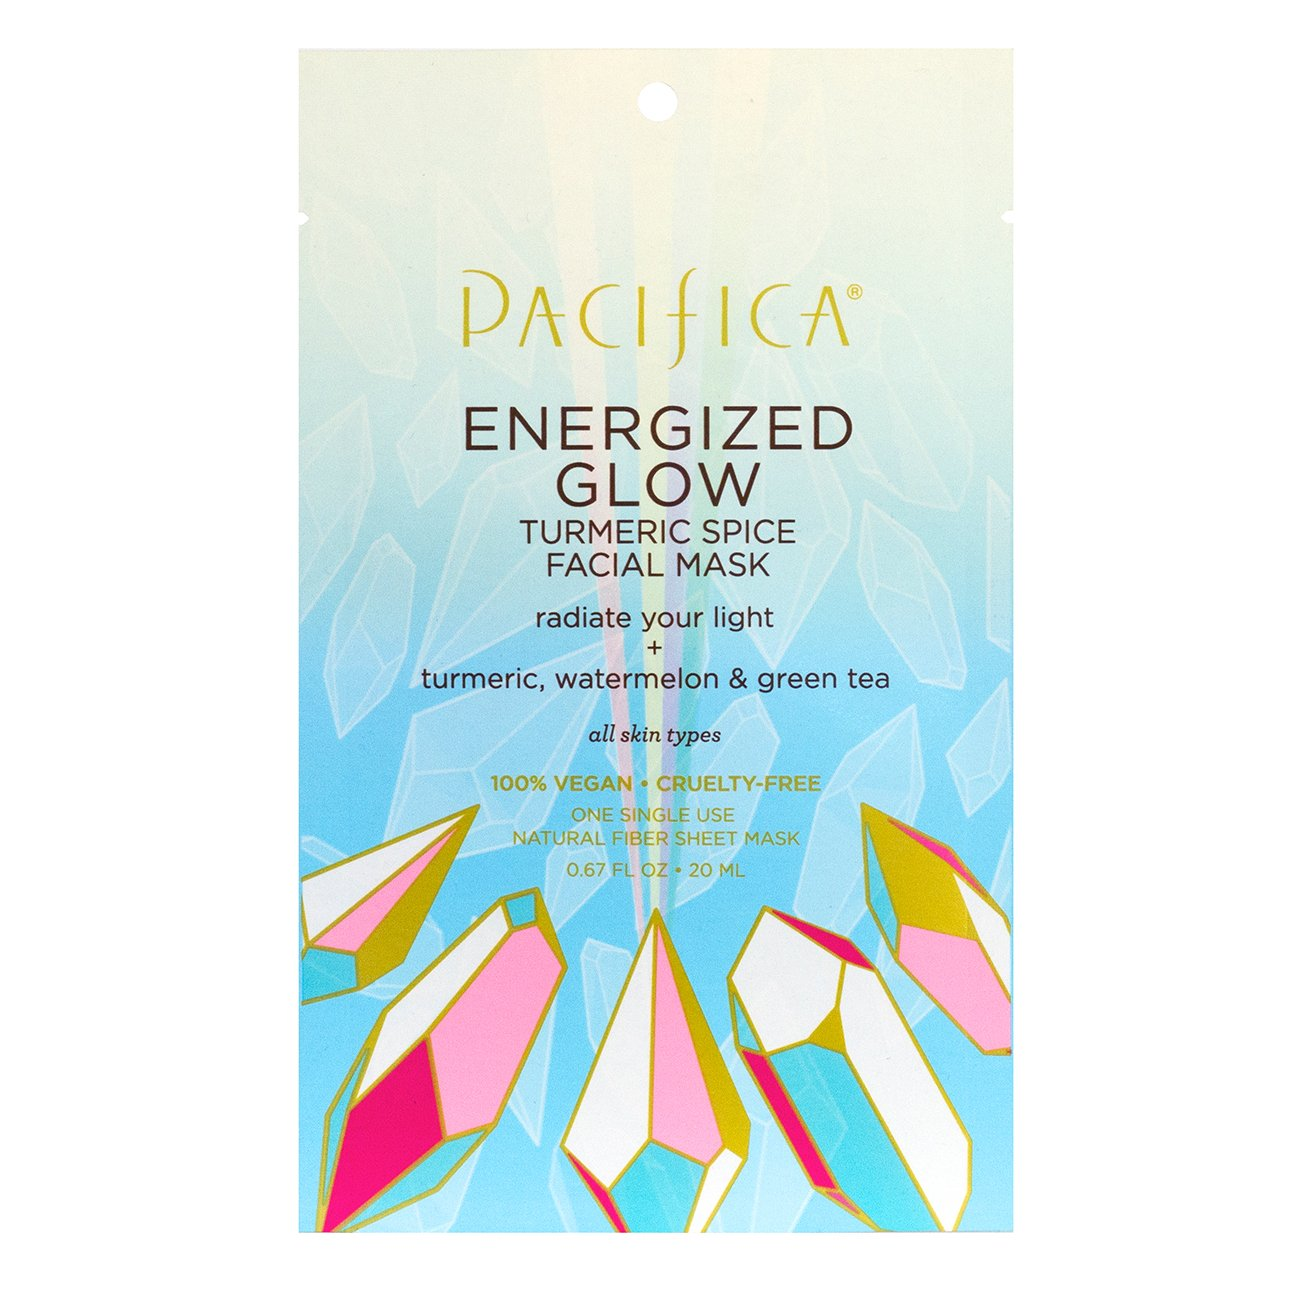 Energized Glow Turmeric Spice Facial Mask - $4 | PacificaRadiate your beautiful light with glowing skin. Pacifica's Energized Glow Turmeric Spice Facial Mask is a multi-targeted mask infused with a rainbow of plant extracts, turmeric spice, green tea and hyaluronic acid along with enzymes to fight dullness and to help boost brightness.